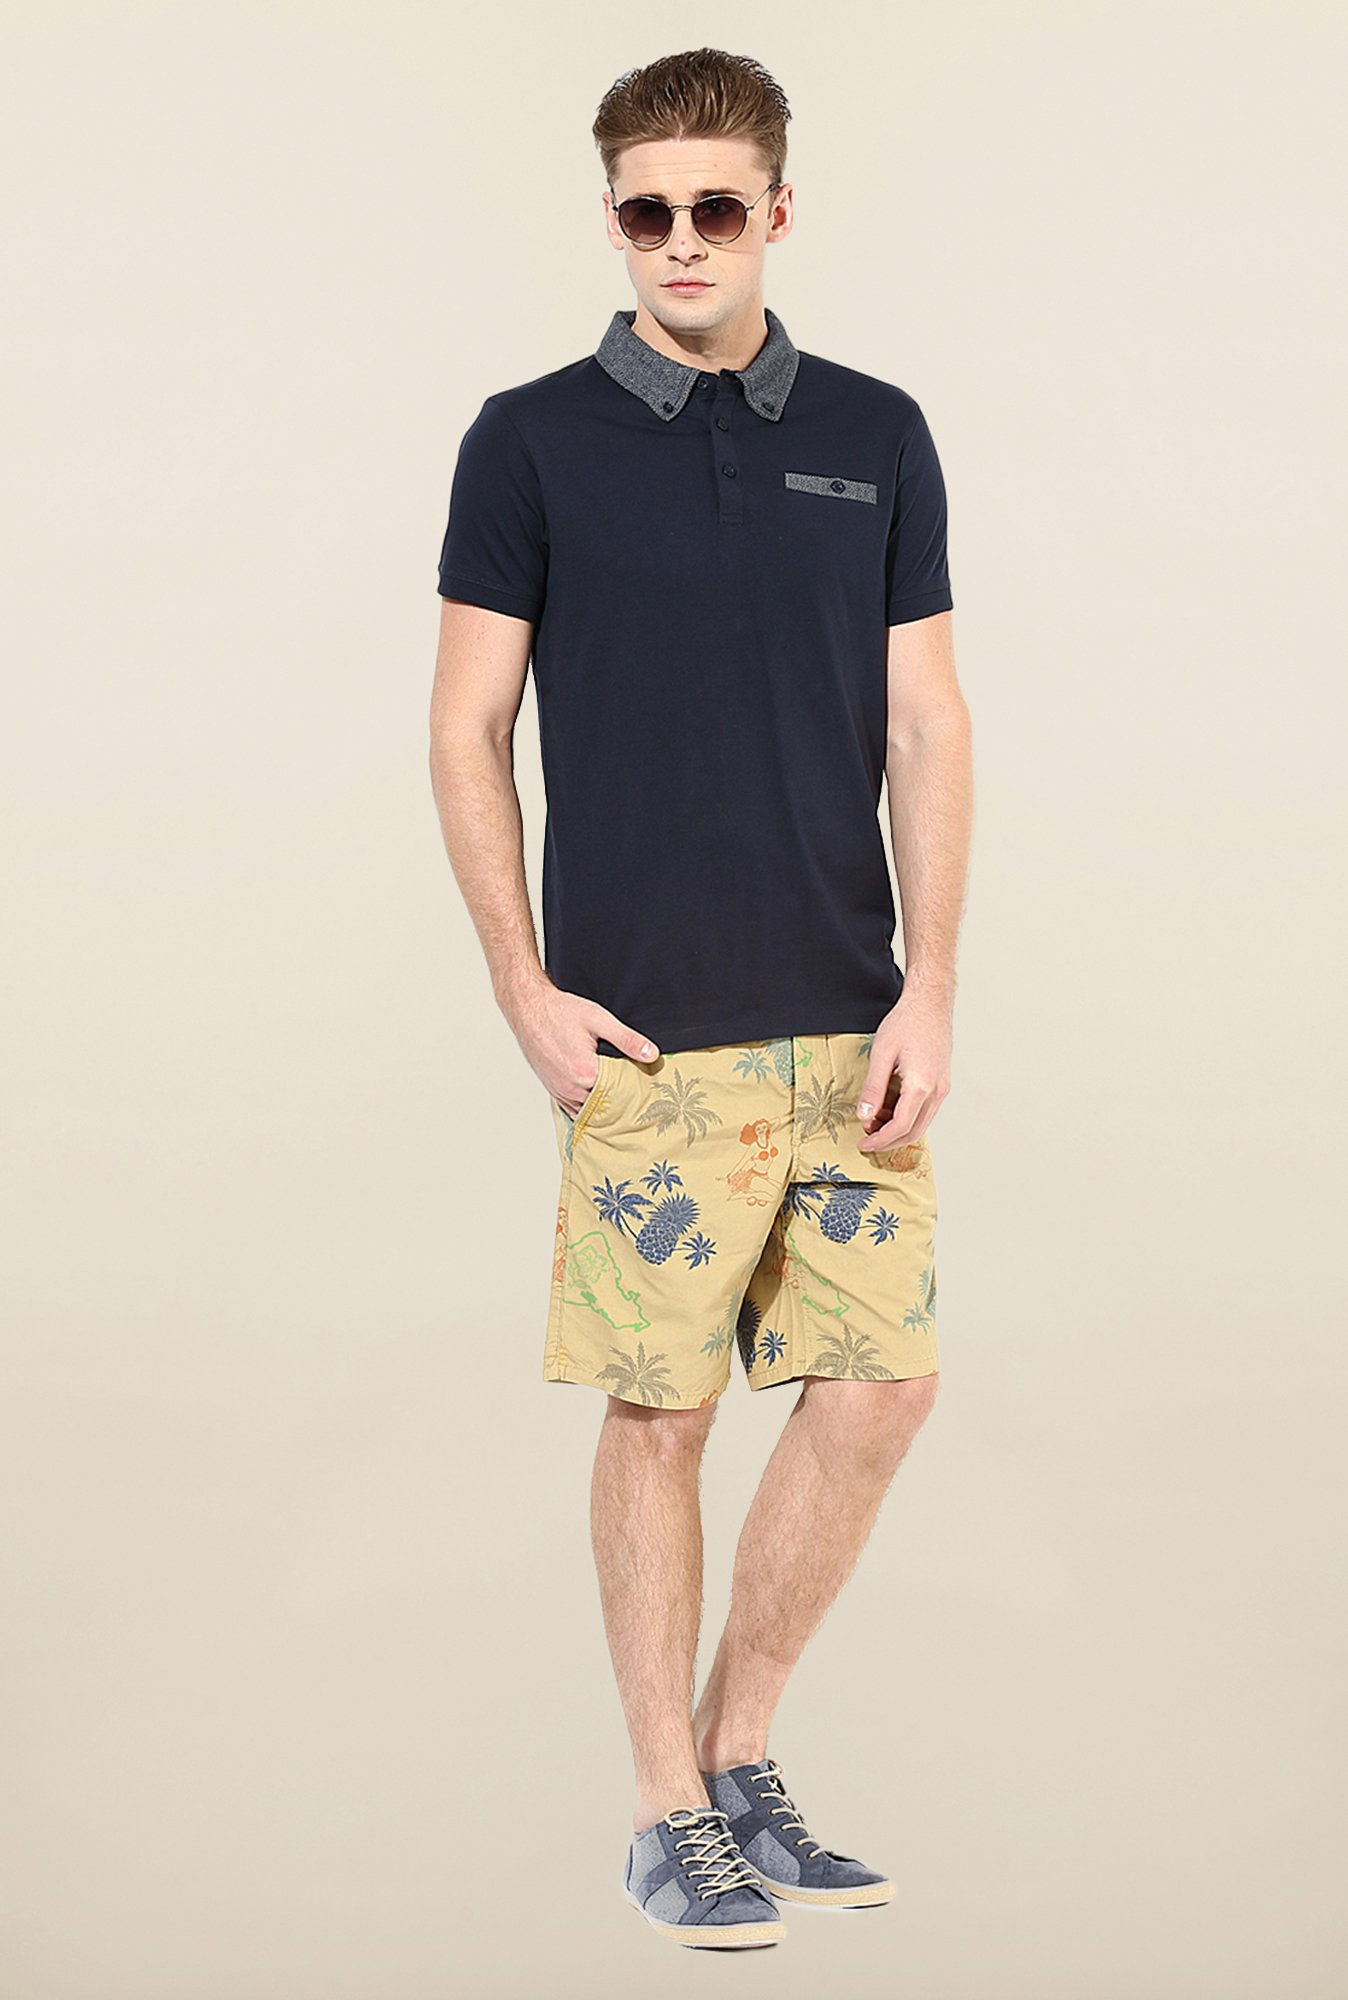 Jack & Jones Navy Solid Polo T-Shirt